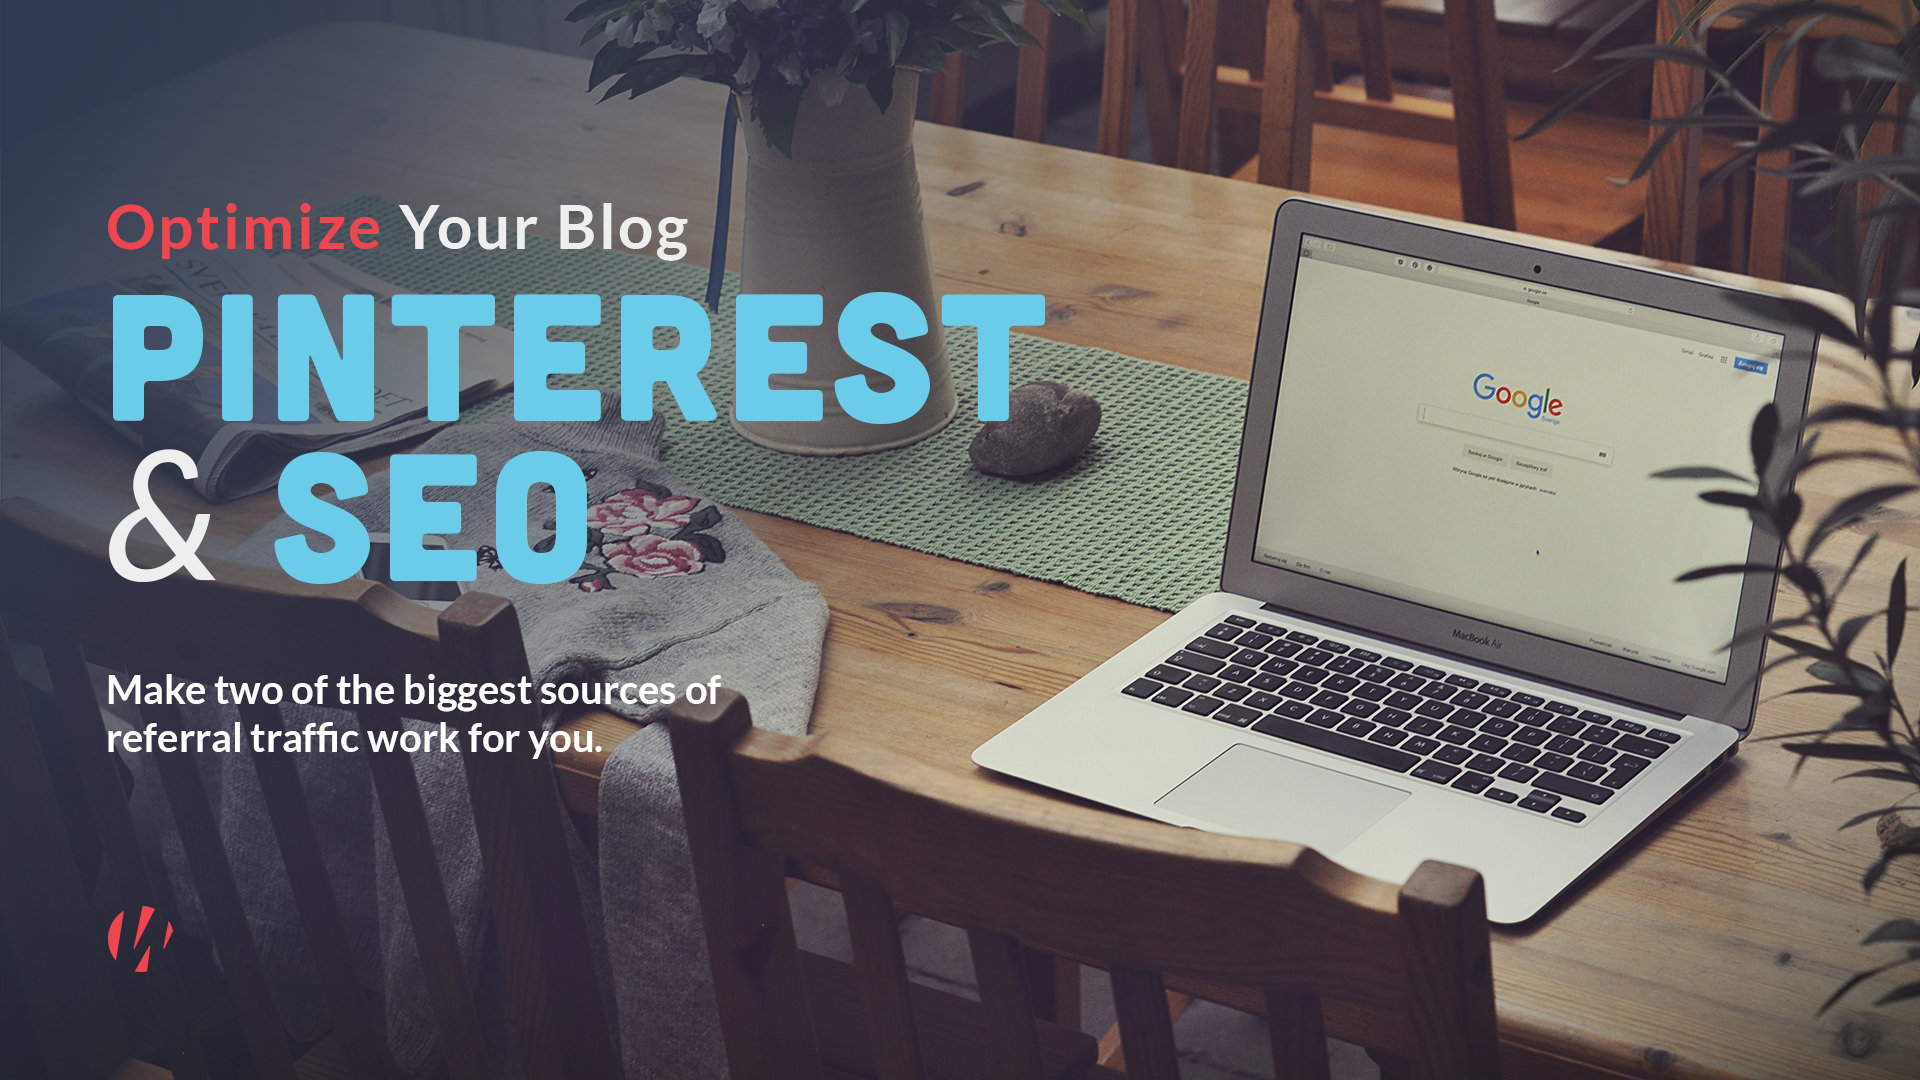 Pinterest and SEO with laptop in background